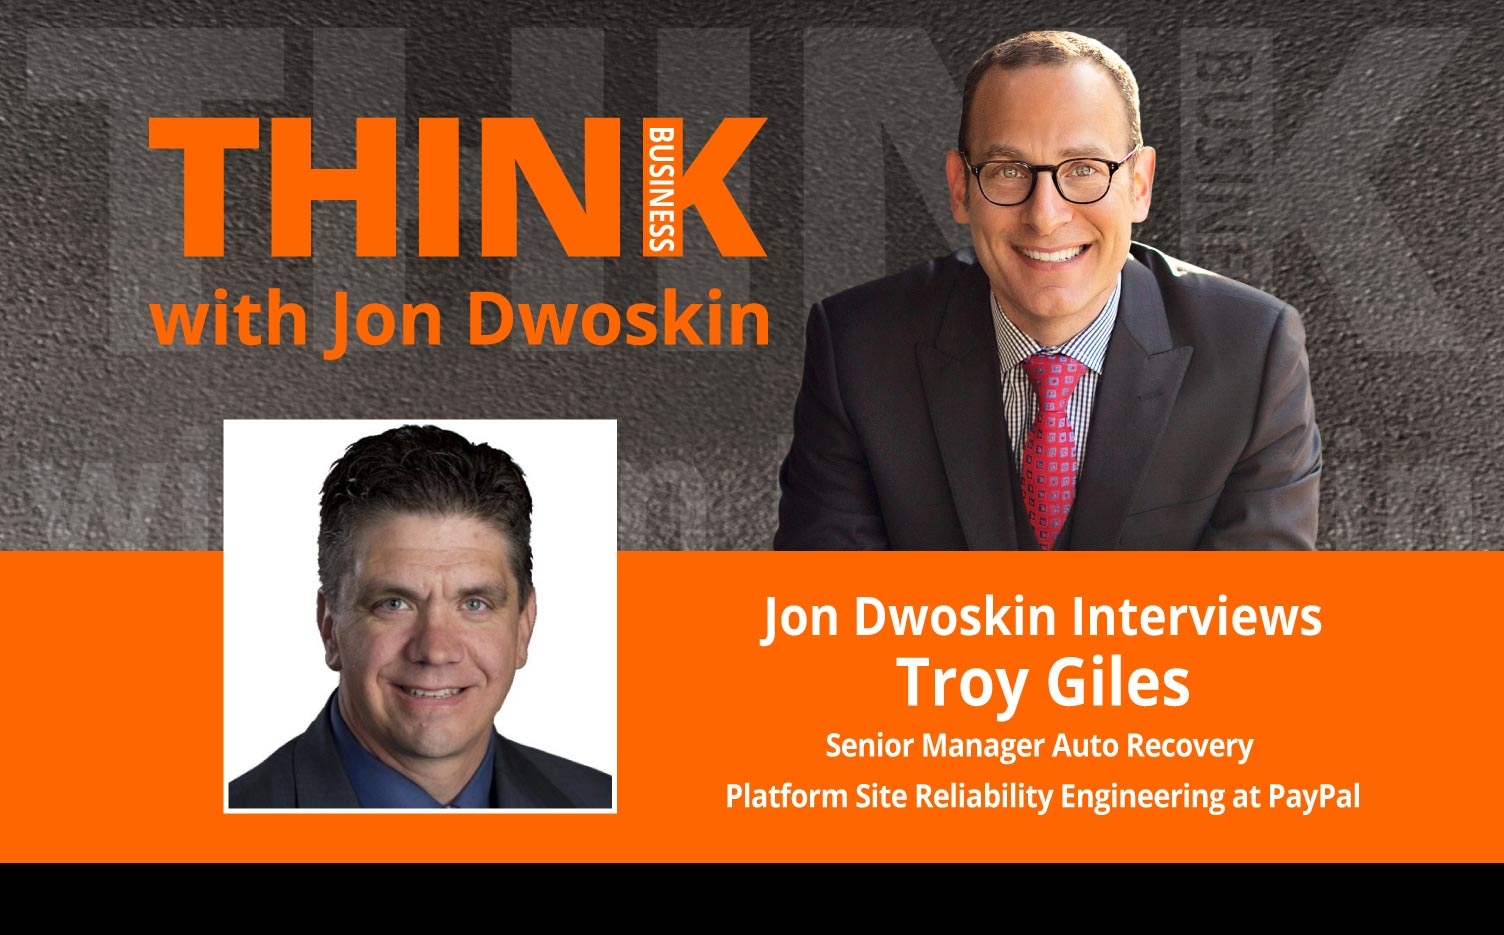 Jon Dwoskin Interviews Troy Giles, Senior Manager Auto Recovery Platform Site Reliability Engineering at PayPal